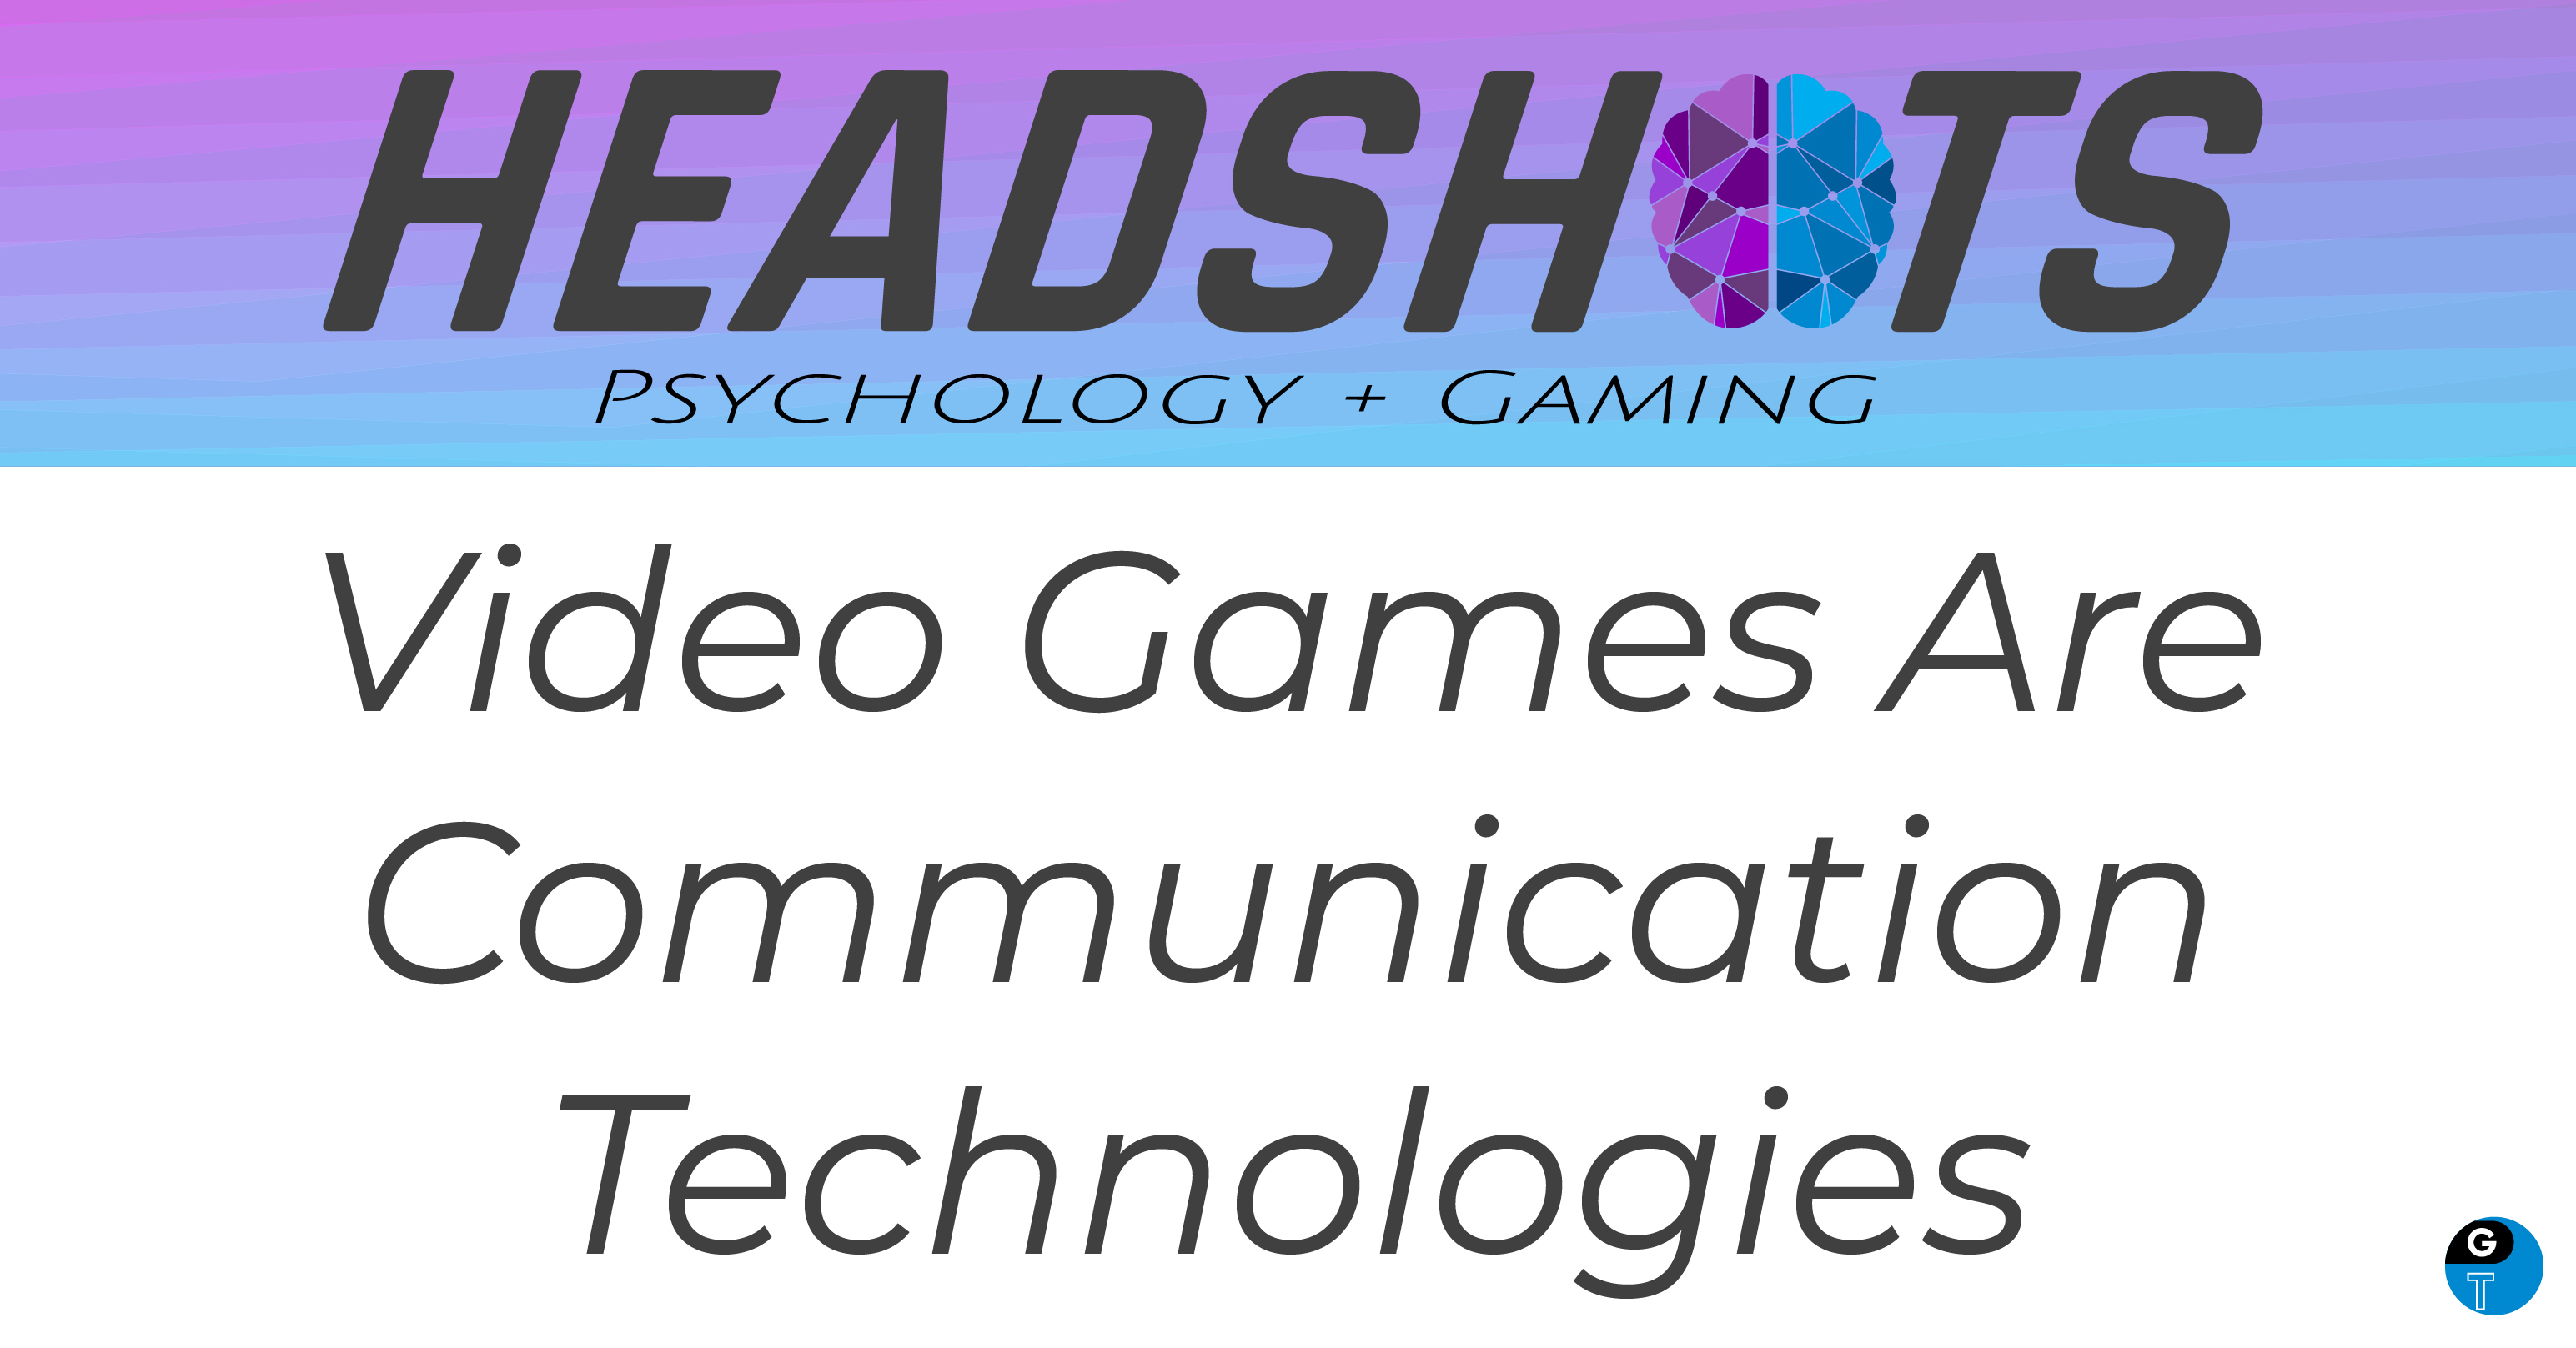 Video Games Are Communication Technologies